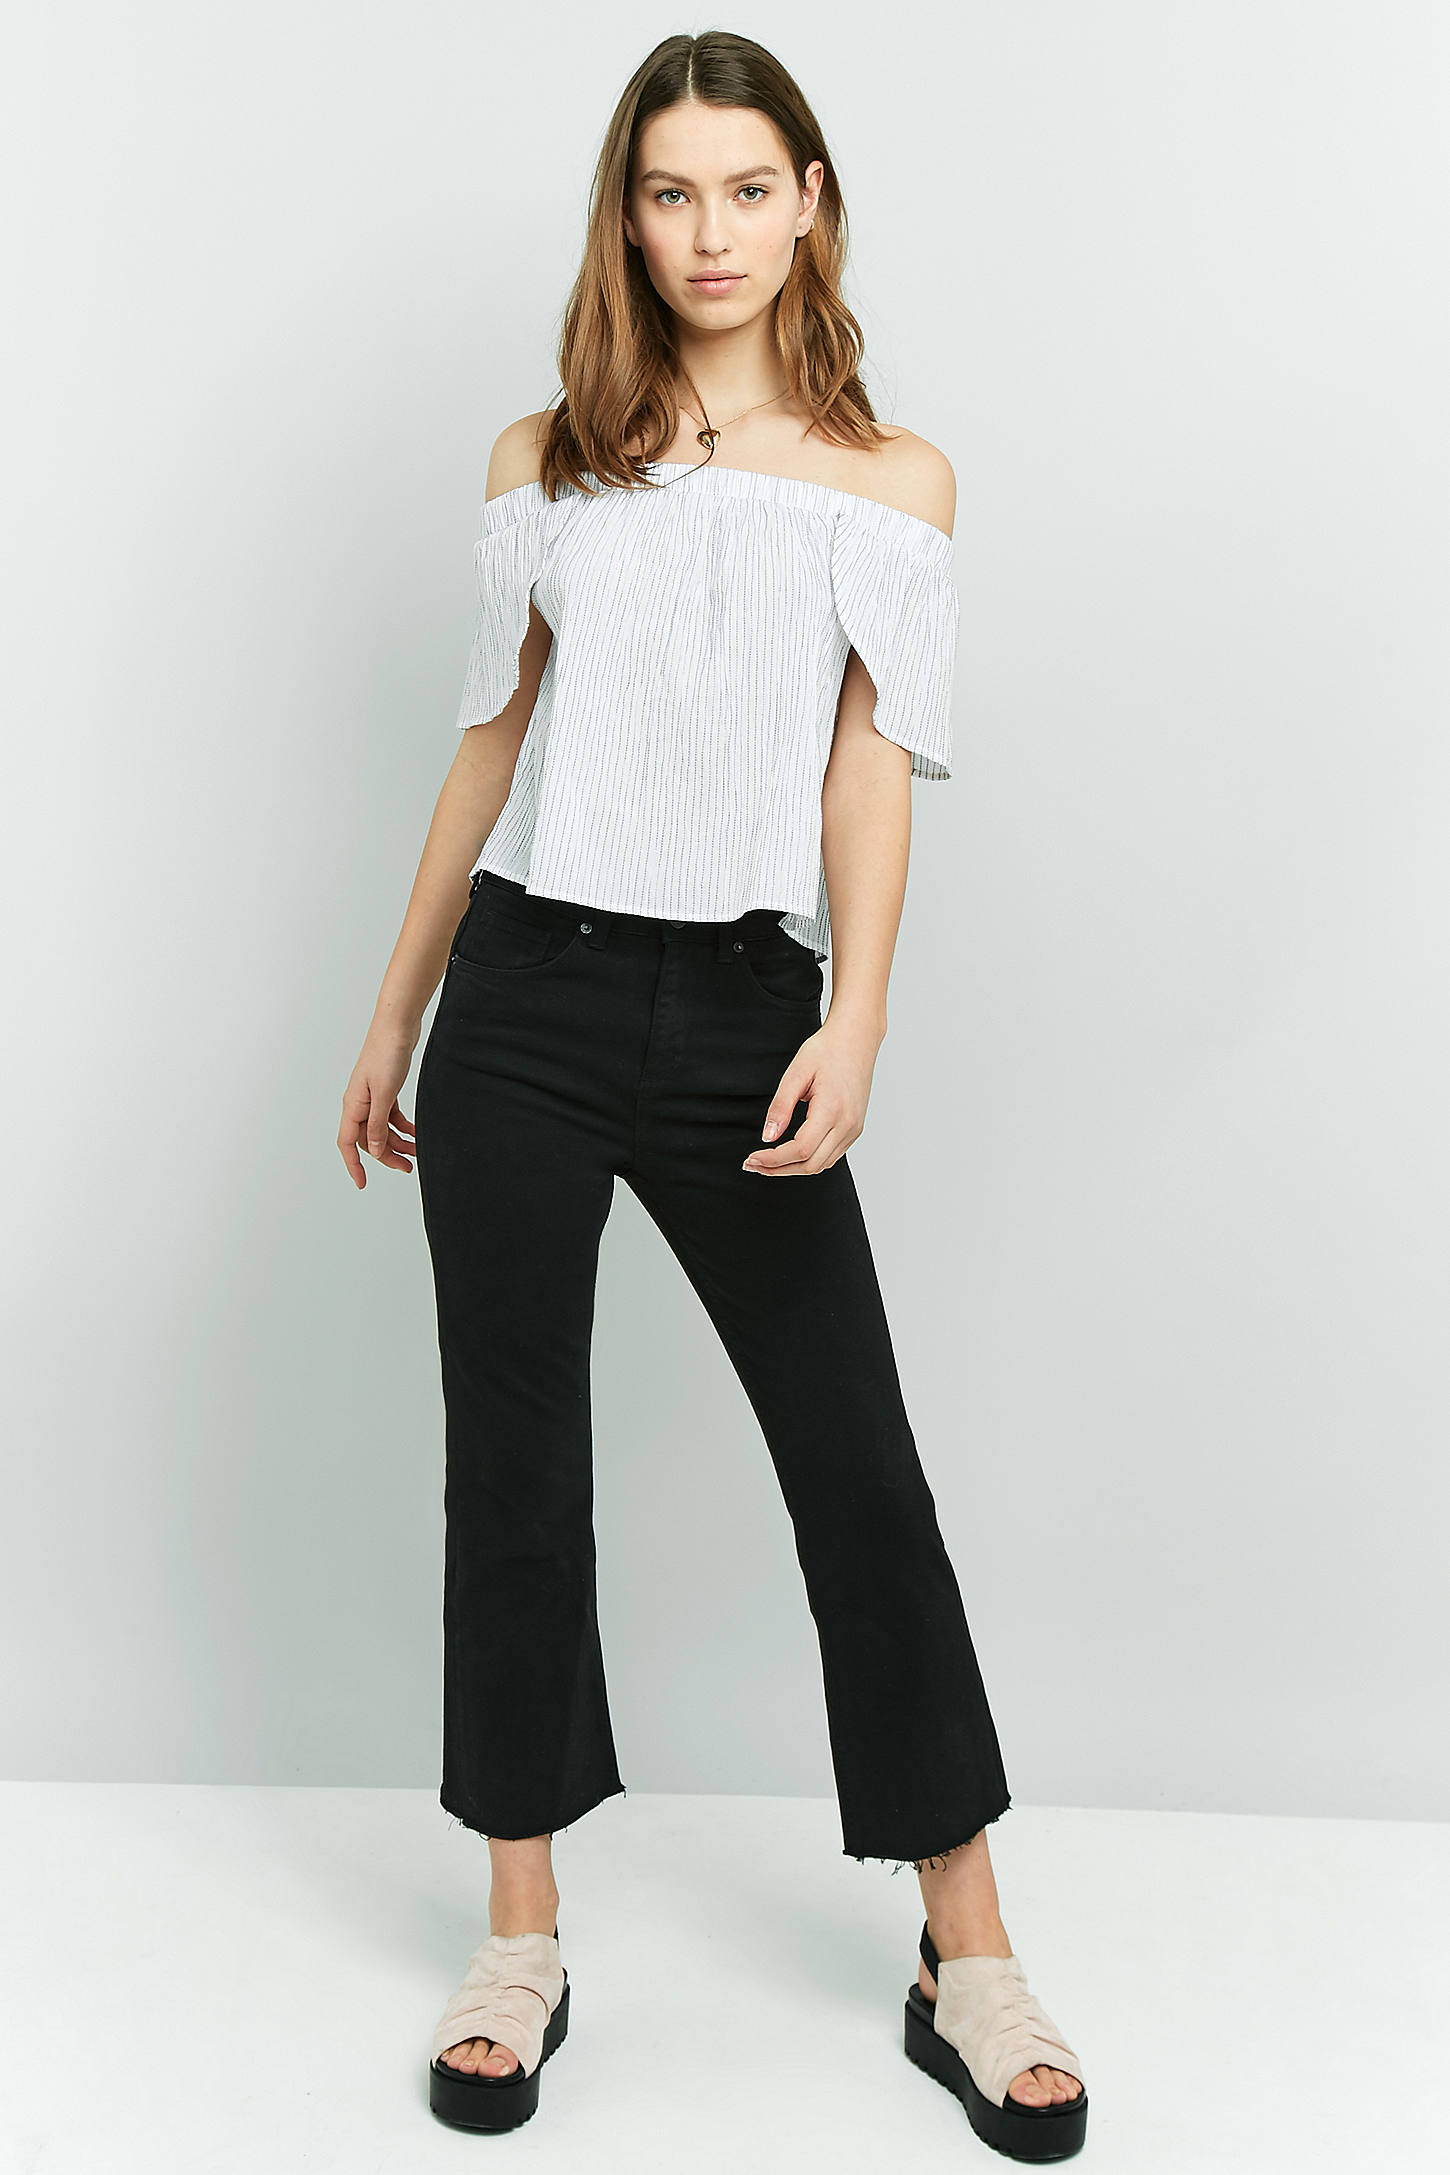 BDG Kick Flare Black Jeans | Urban Outfitters